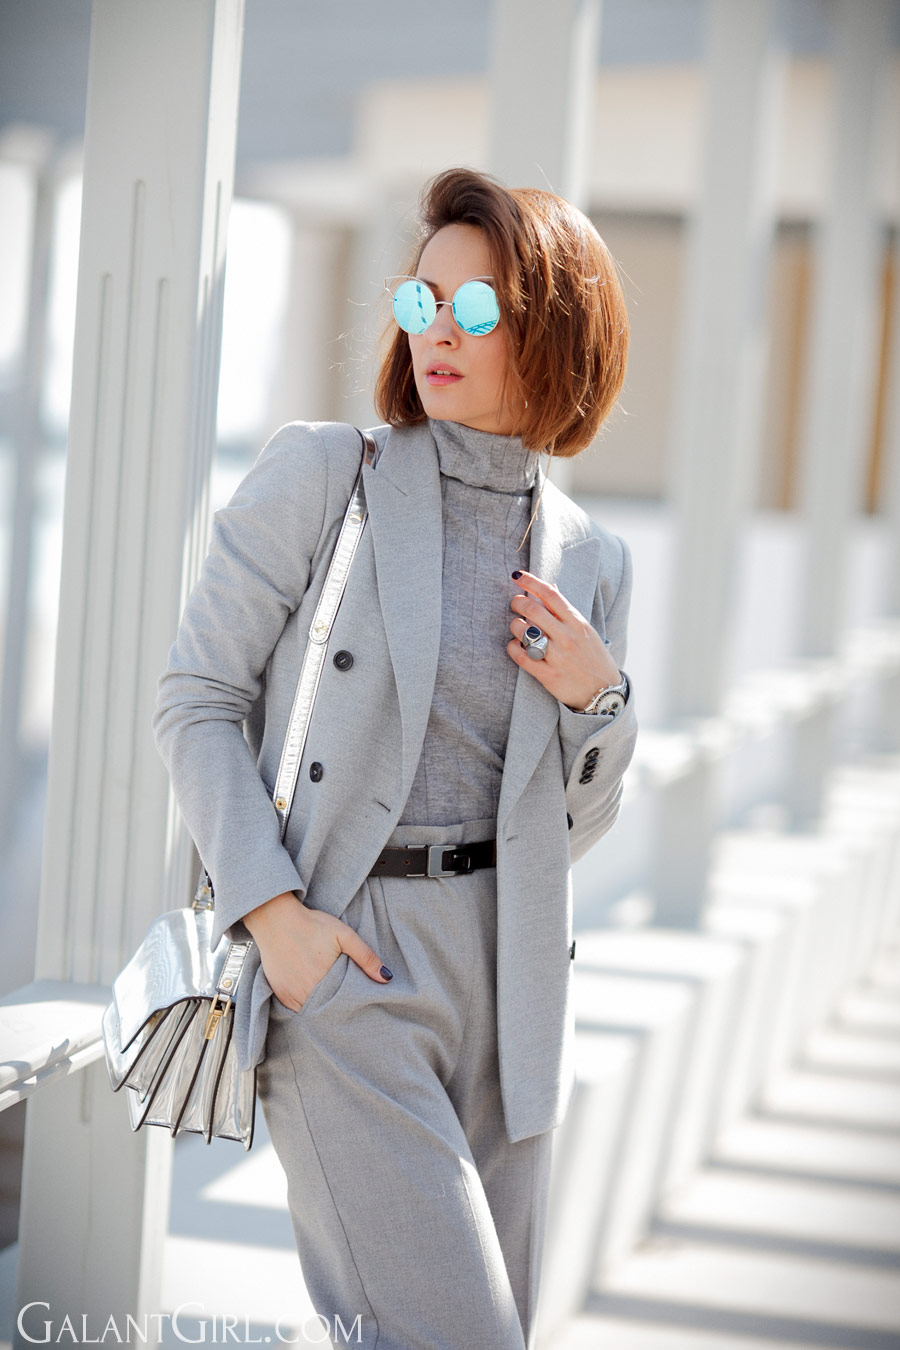 marni trunk bag, total grey outfits, the power of suit